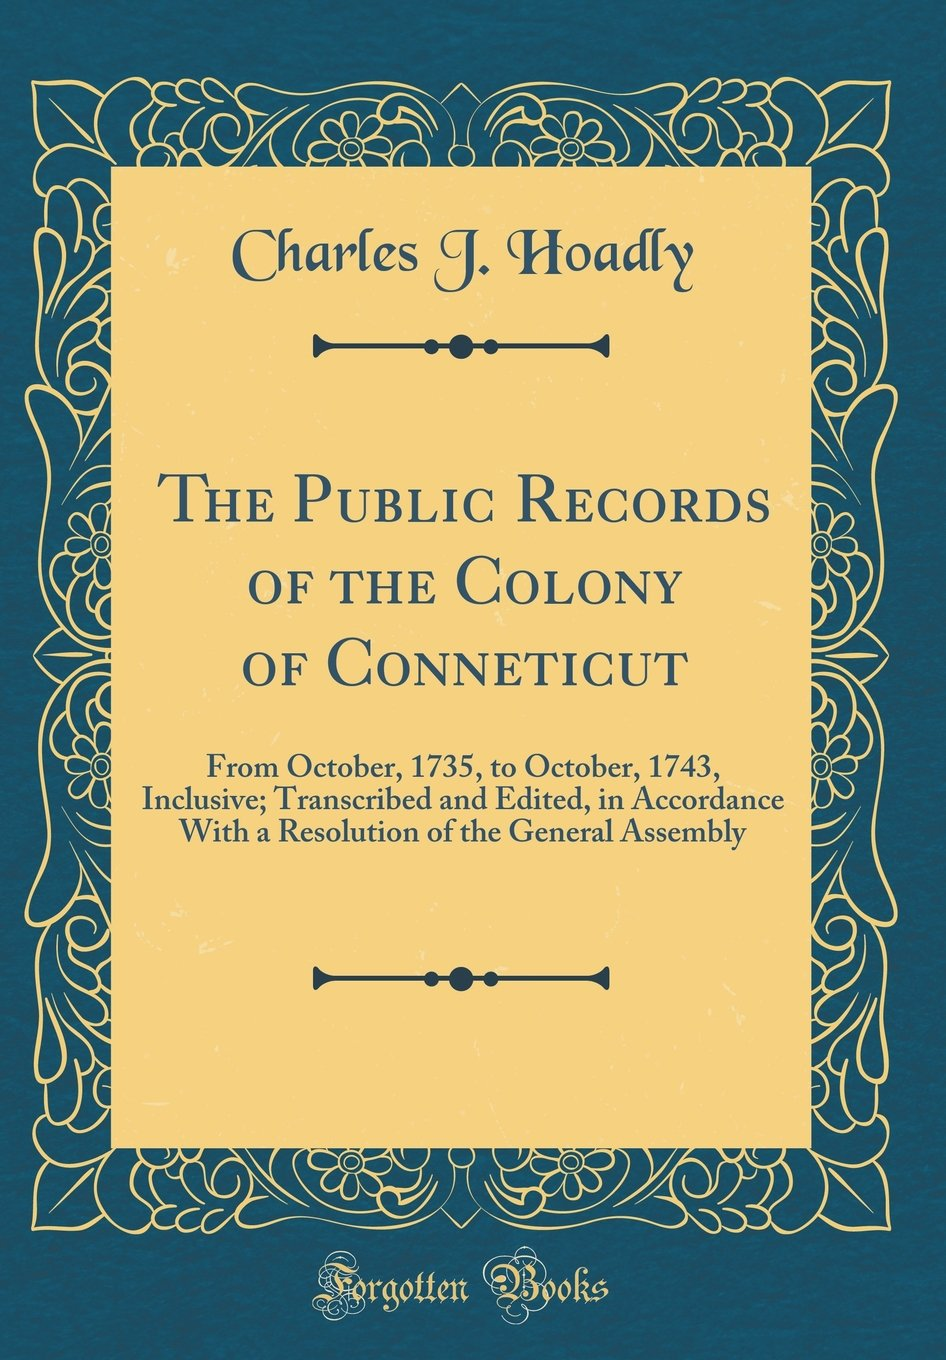 Download The Public Records of the Colony of Conneticut: From October, 1735, to October, 1743, Inclusive; Transcribed and Edited, in Accordance With a Resolution of the General Assembly (Classic Reprint) pdf epub